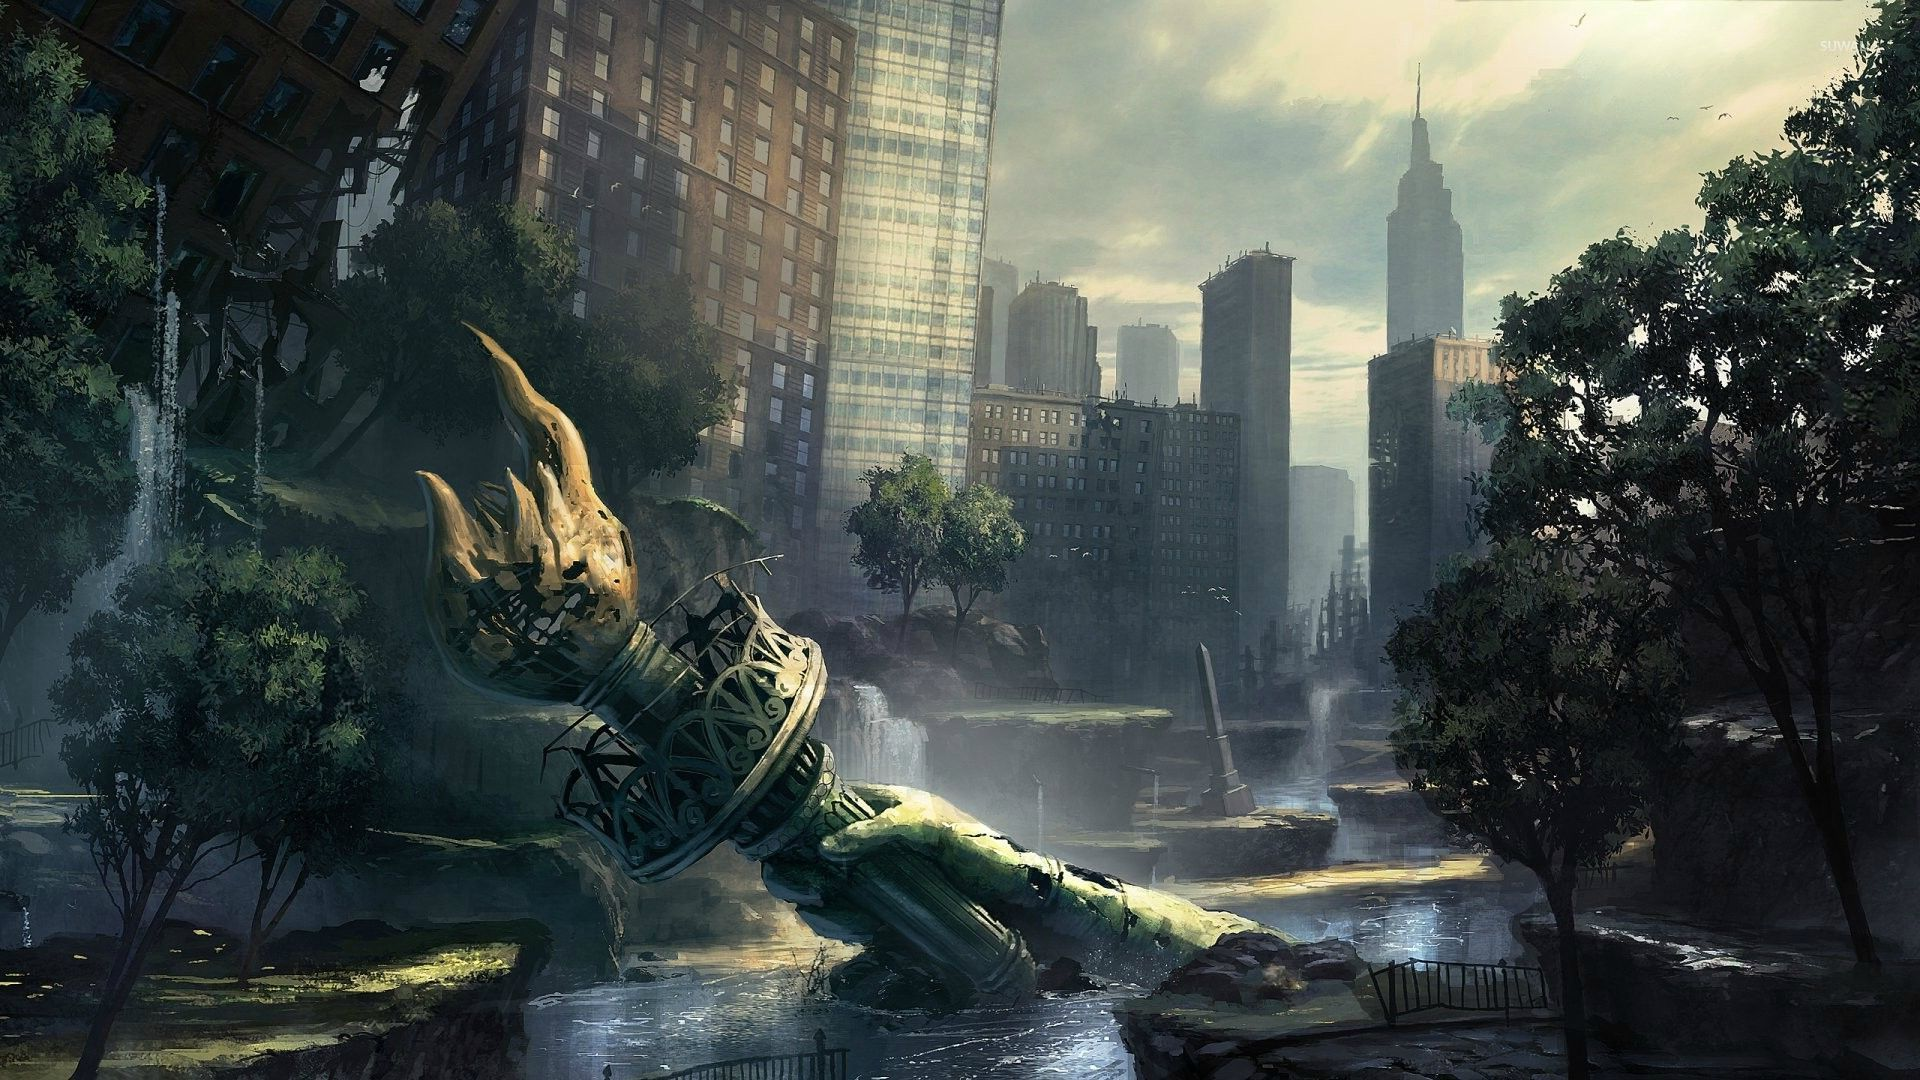 Post apocalyptic New York City